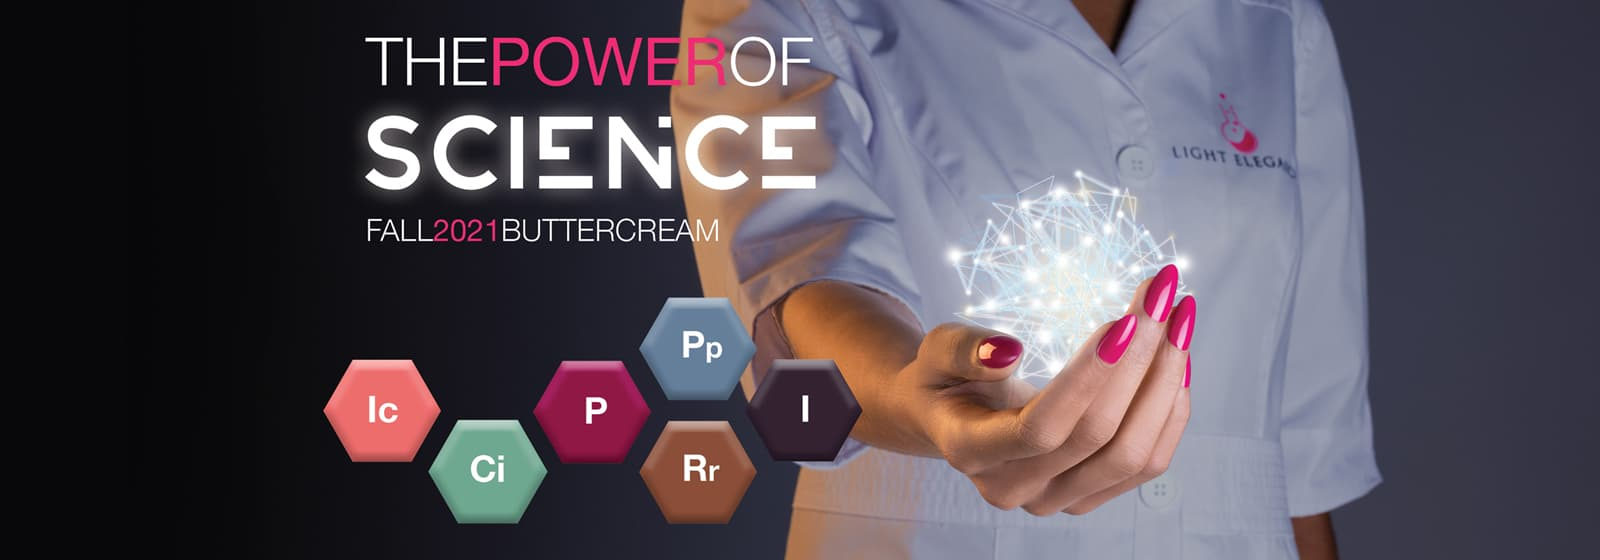 power of science